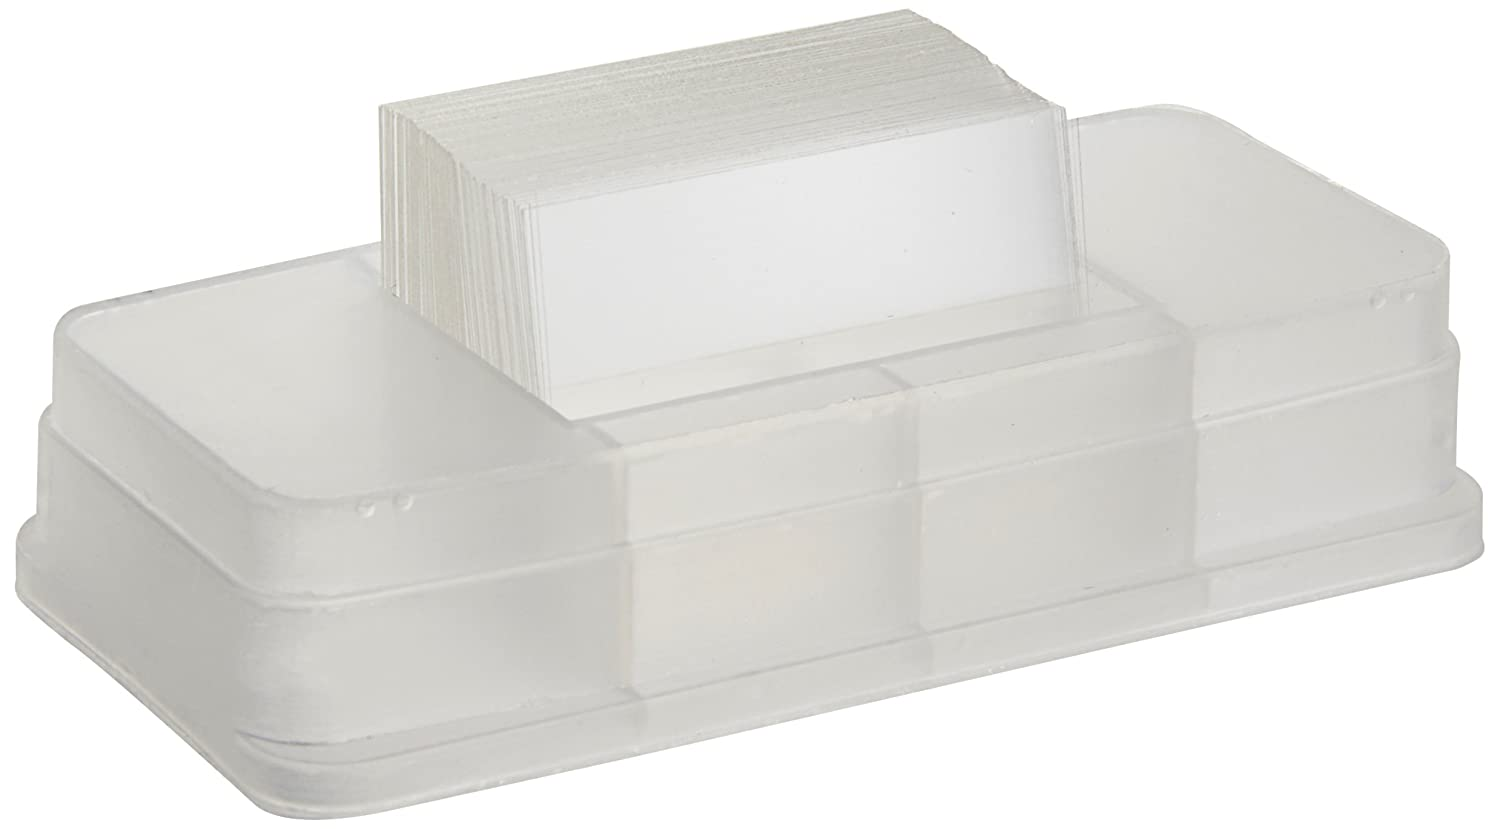 neoLab E-4134  Cover Slips, Thickness I, 24  x 32  mm (Pack of 100) 24 x 32 mm (Pack of 100)